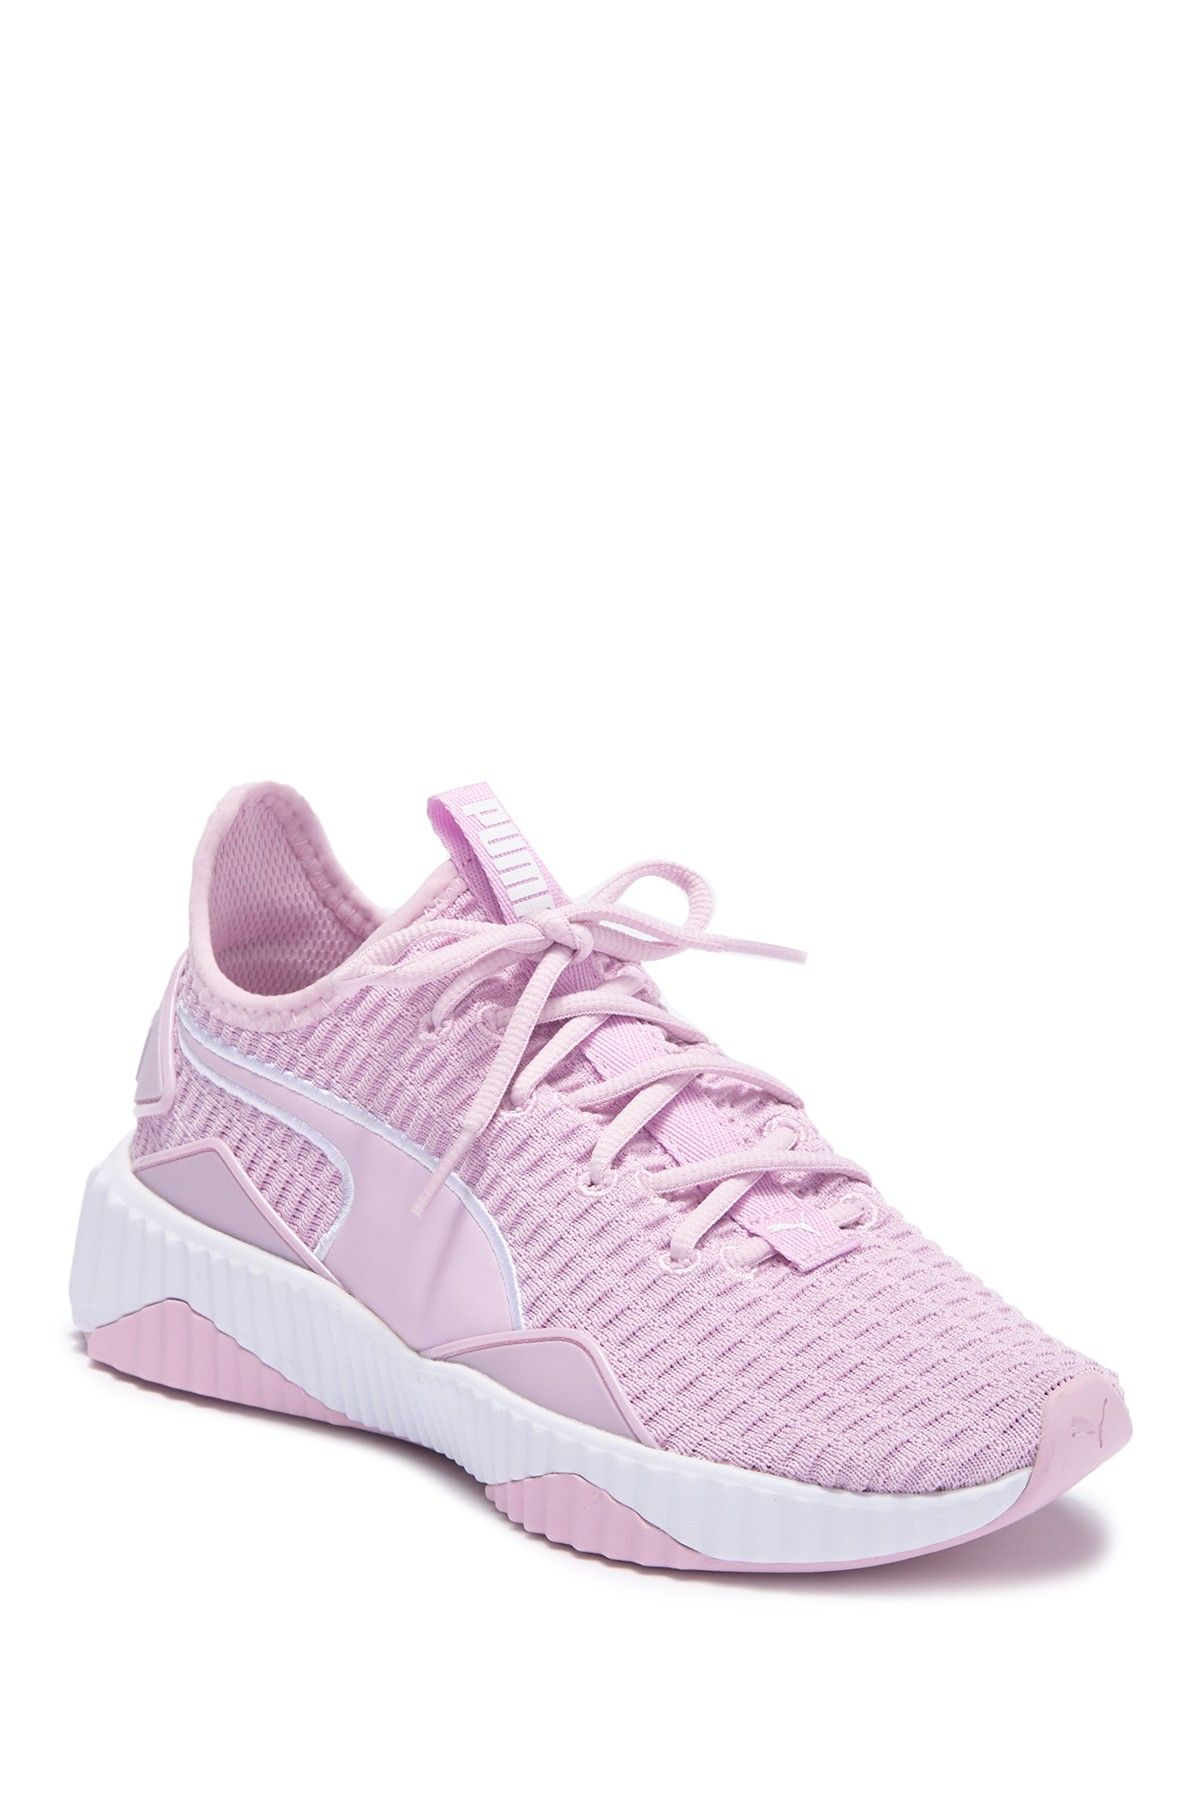 a2d108f8039be9 PUMA - Defy Sneaker (Women) is now 44% off. Free Shipping on orders over   100.